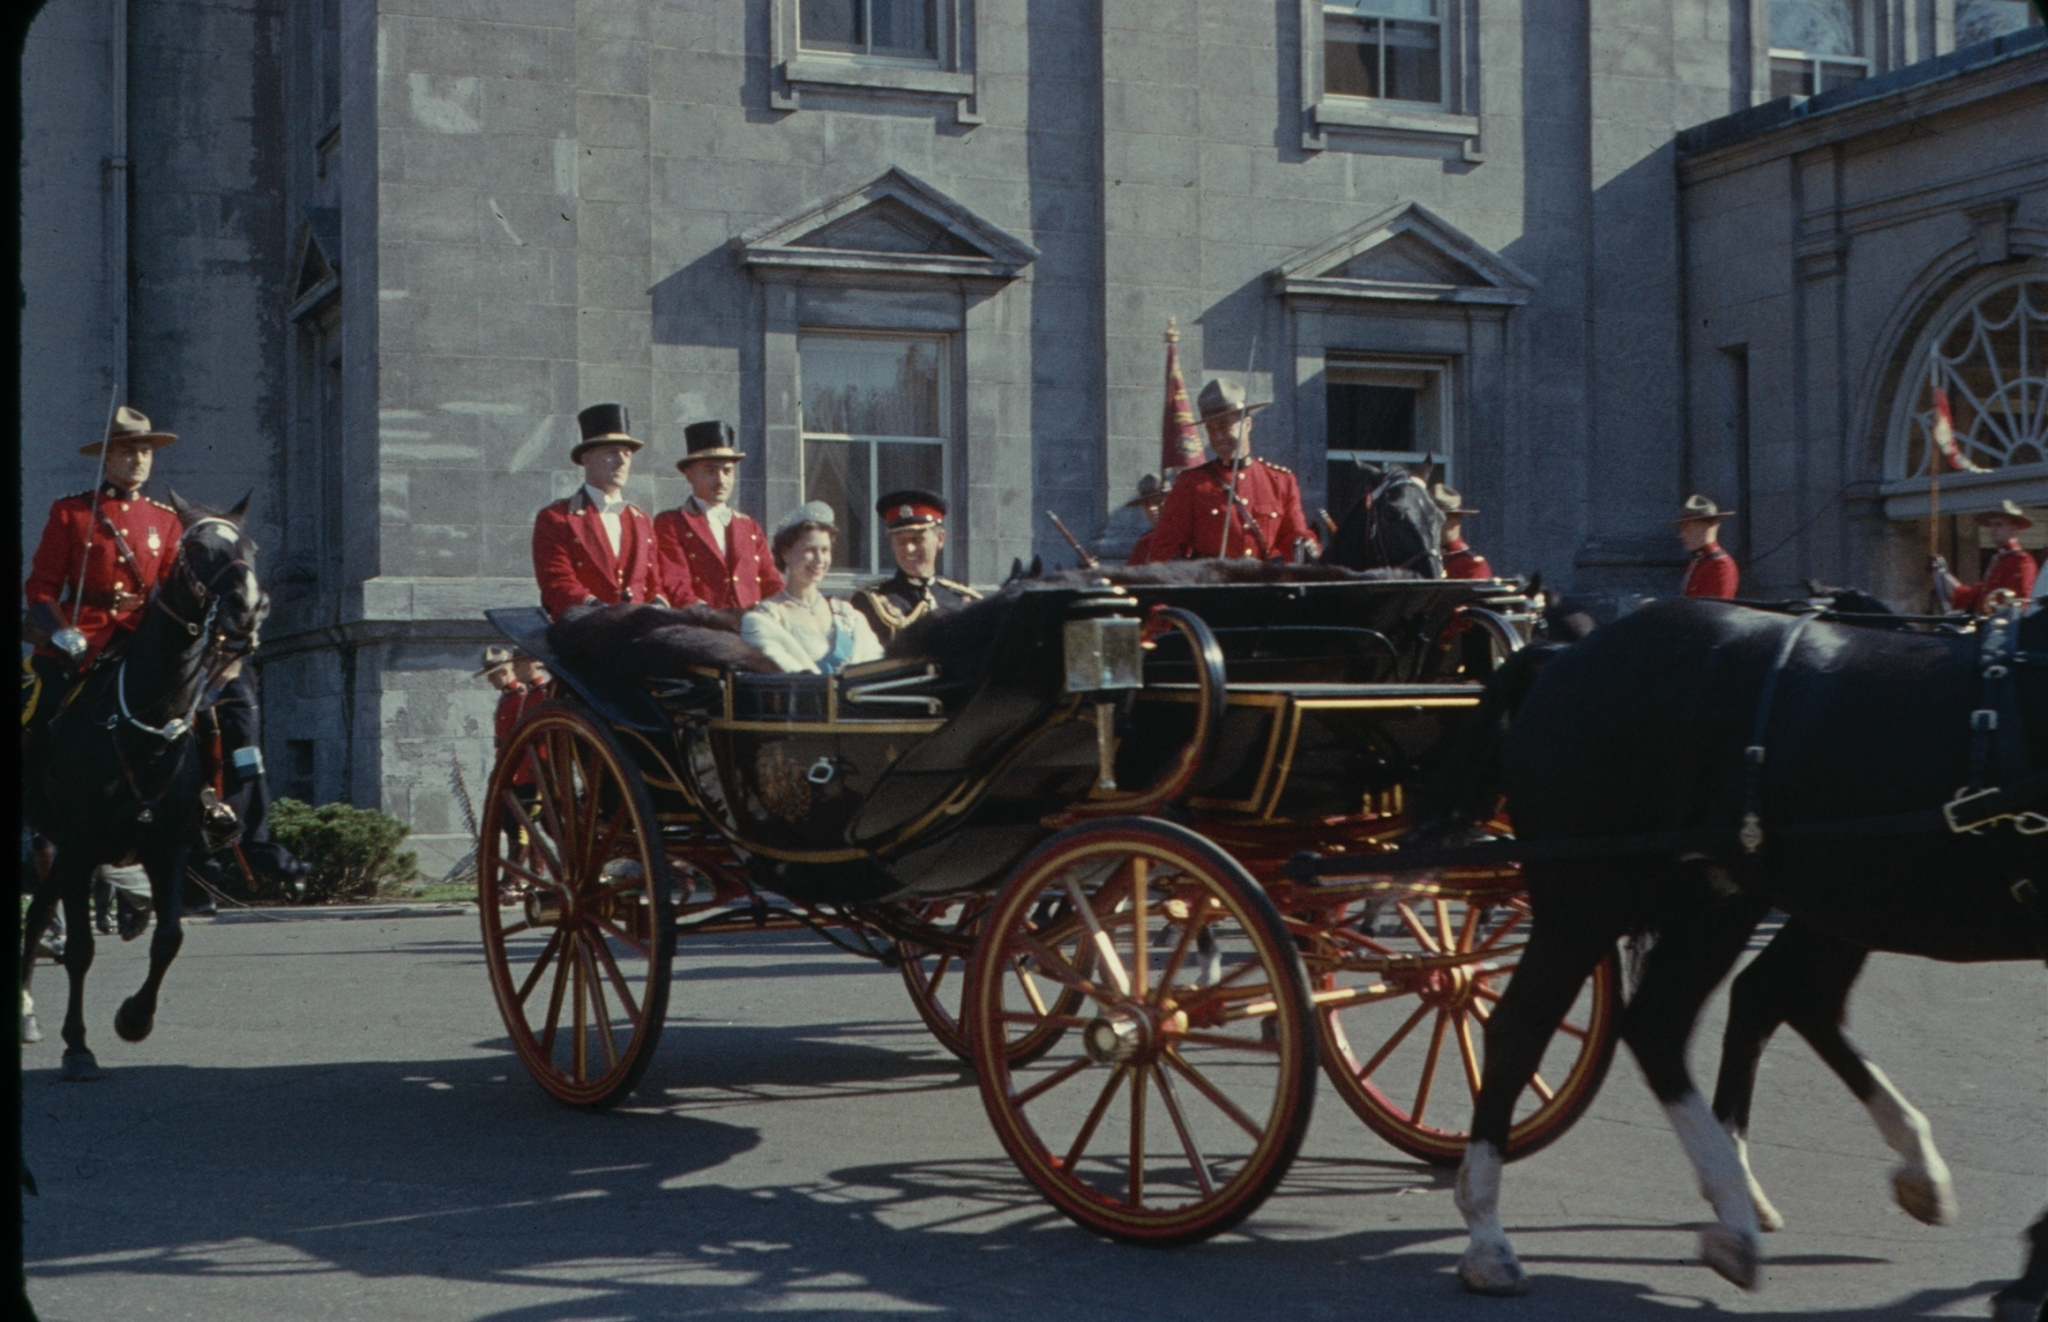 Queen Elizabeth II and Prince Philip riding in a carriage together with the royal guards, Ontario, Canada, October 1957.